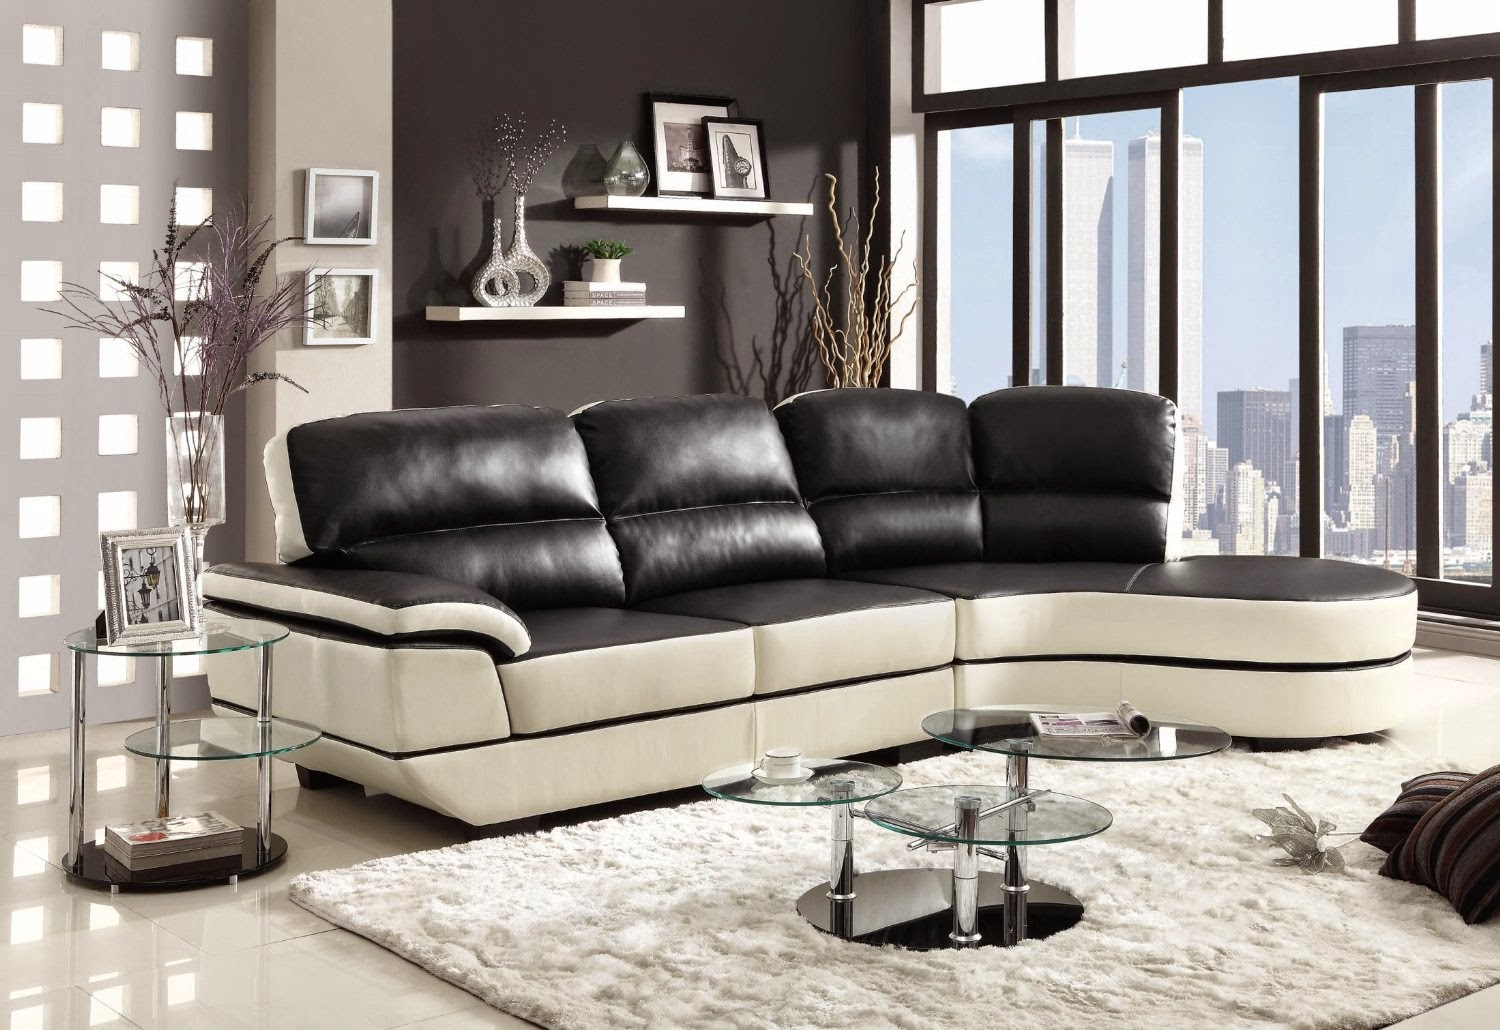 Curved Sofa Website Reviews: Curved Sectional Sofa With Chaise Throughout 4Pc Crowningshield Contemporary Chaise Sectional Sofas (View 4 of 15)